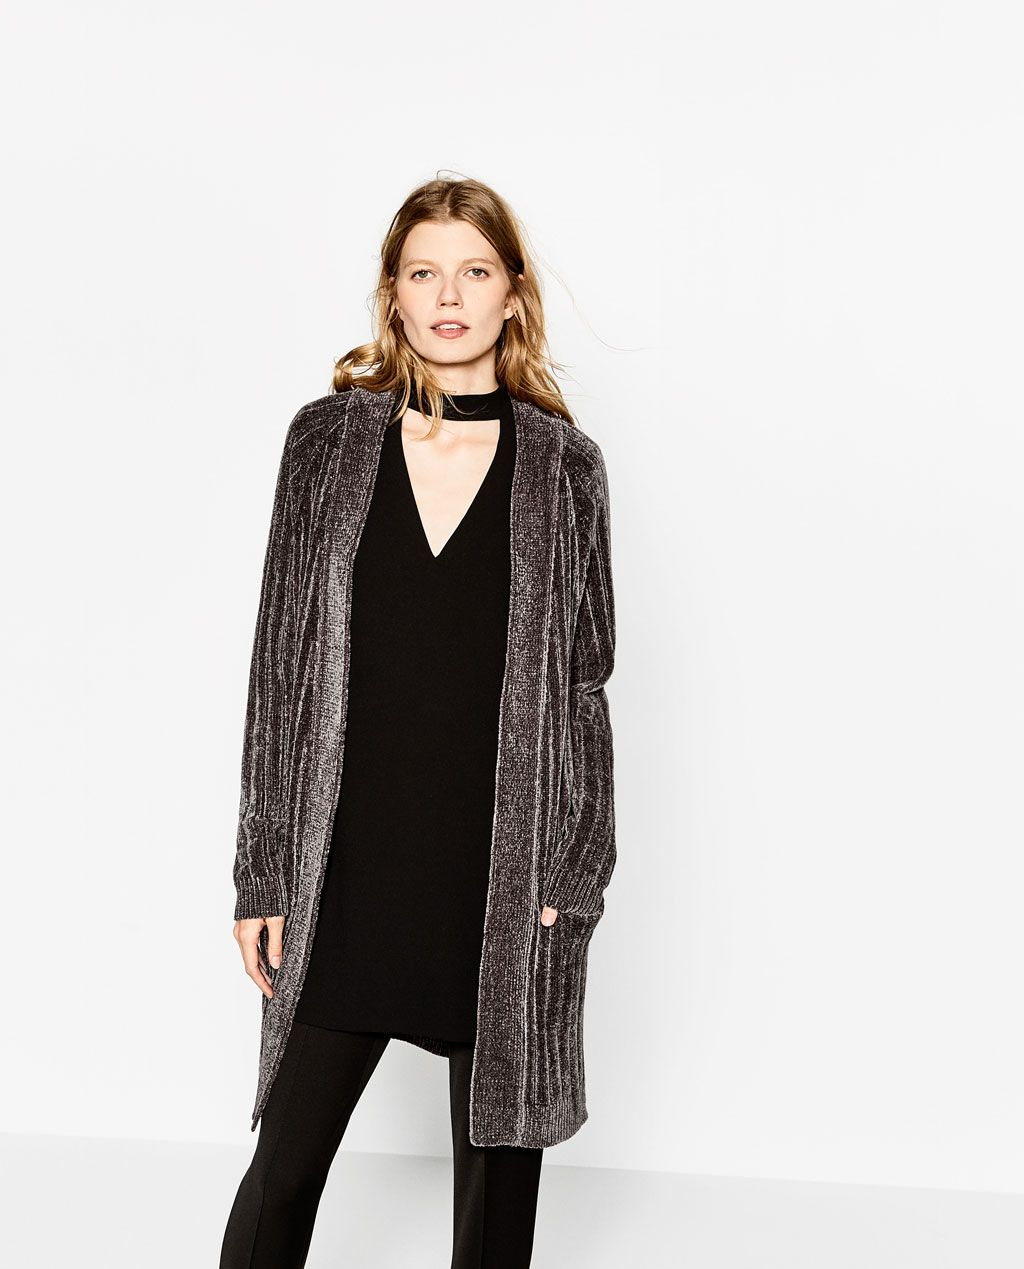 CHAQUETA LARGA CHENILLA | Zara women, Winter style and Knitwear